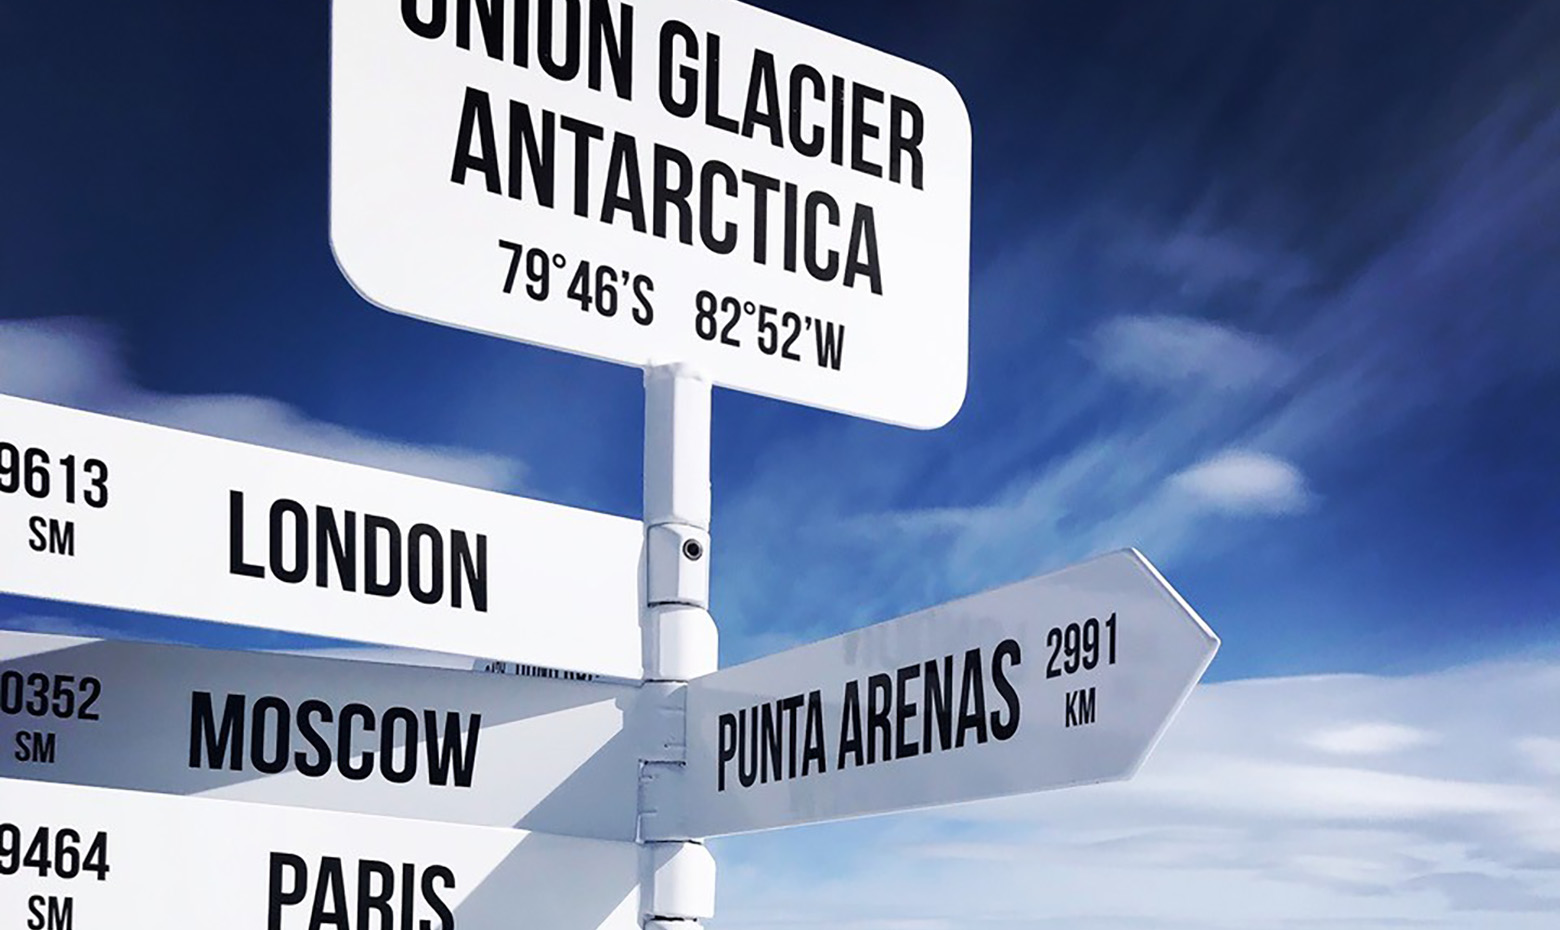 The Union Glacier Camp in Antarctica serves as home base for many expeditions all over the continent.